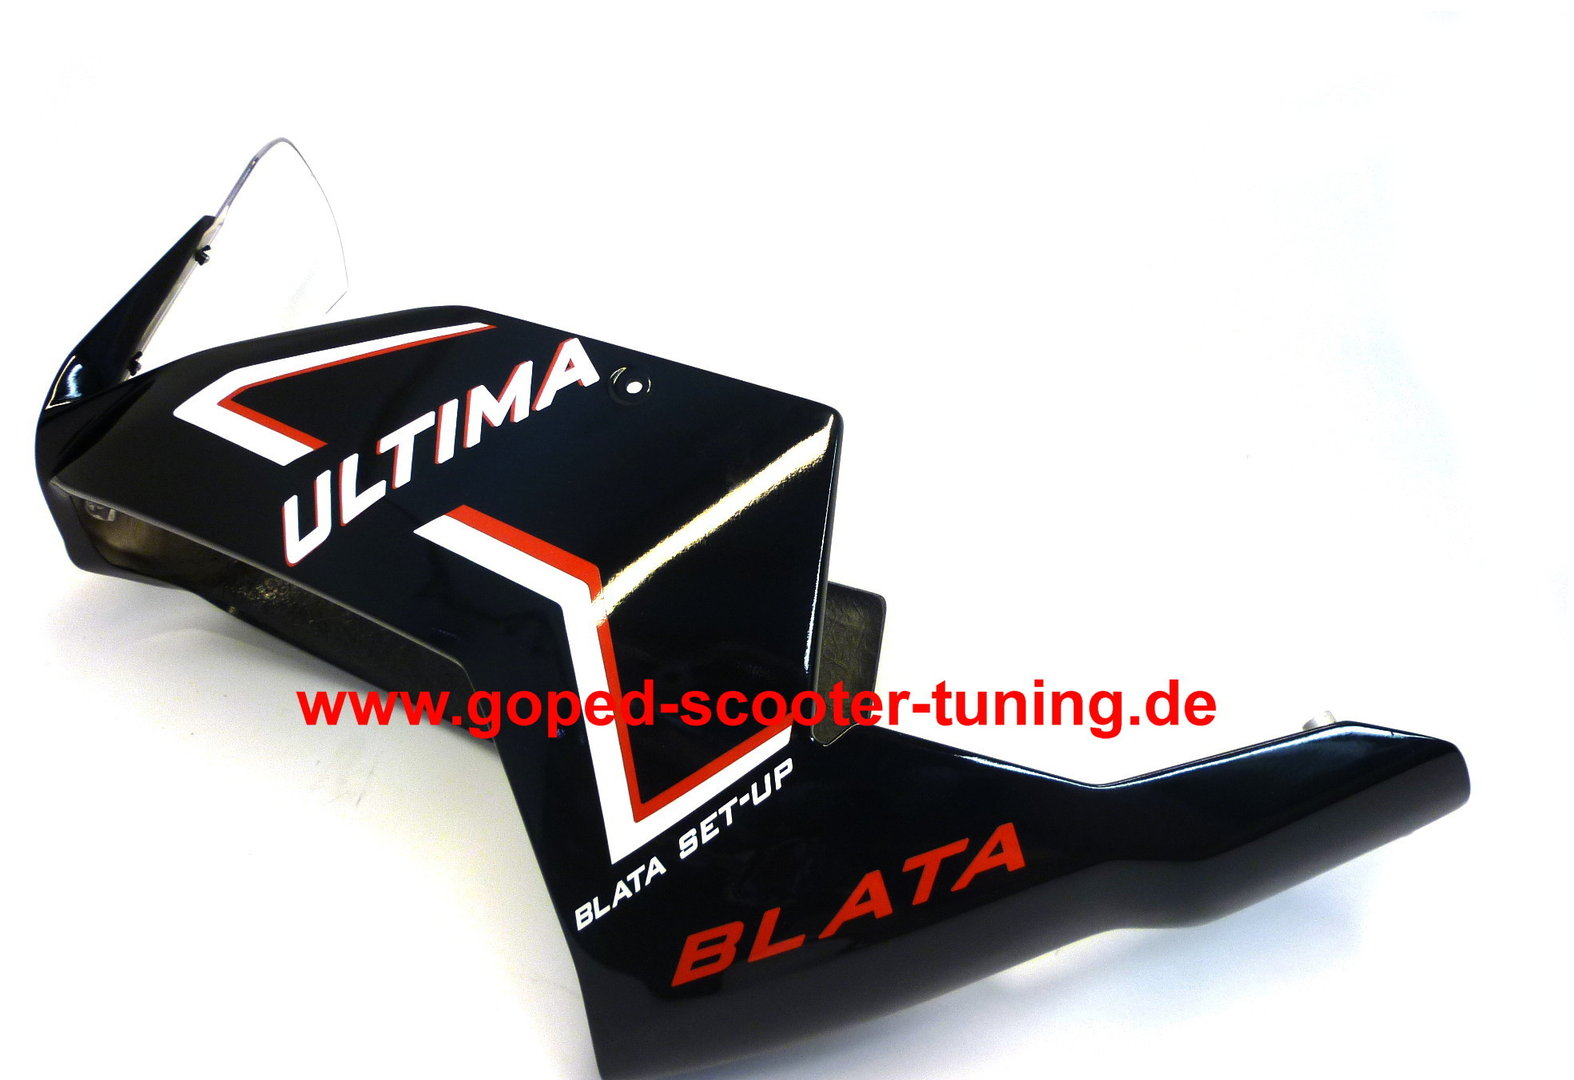 blata ultima cowling complete without decal set. Black Bedroom Furniture Sets. Home Design Ideas